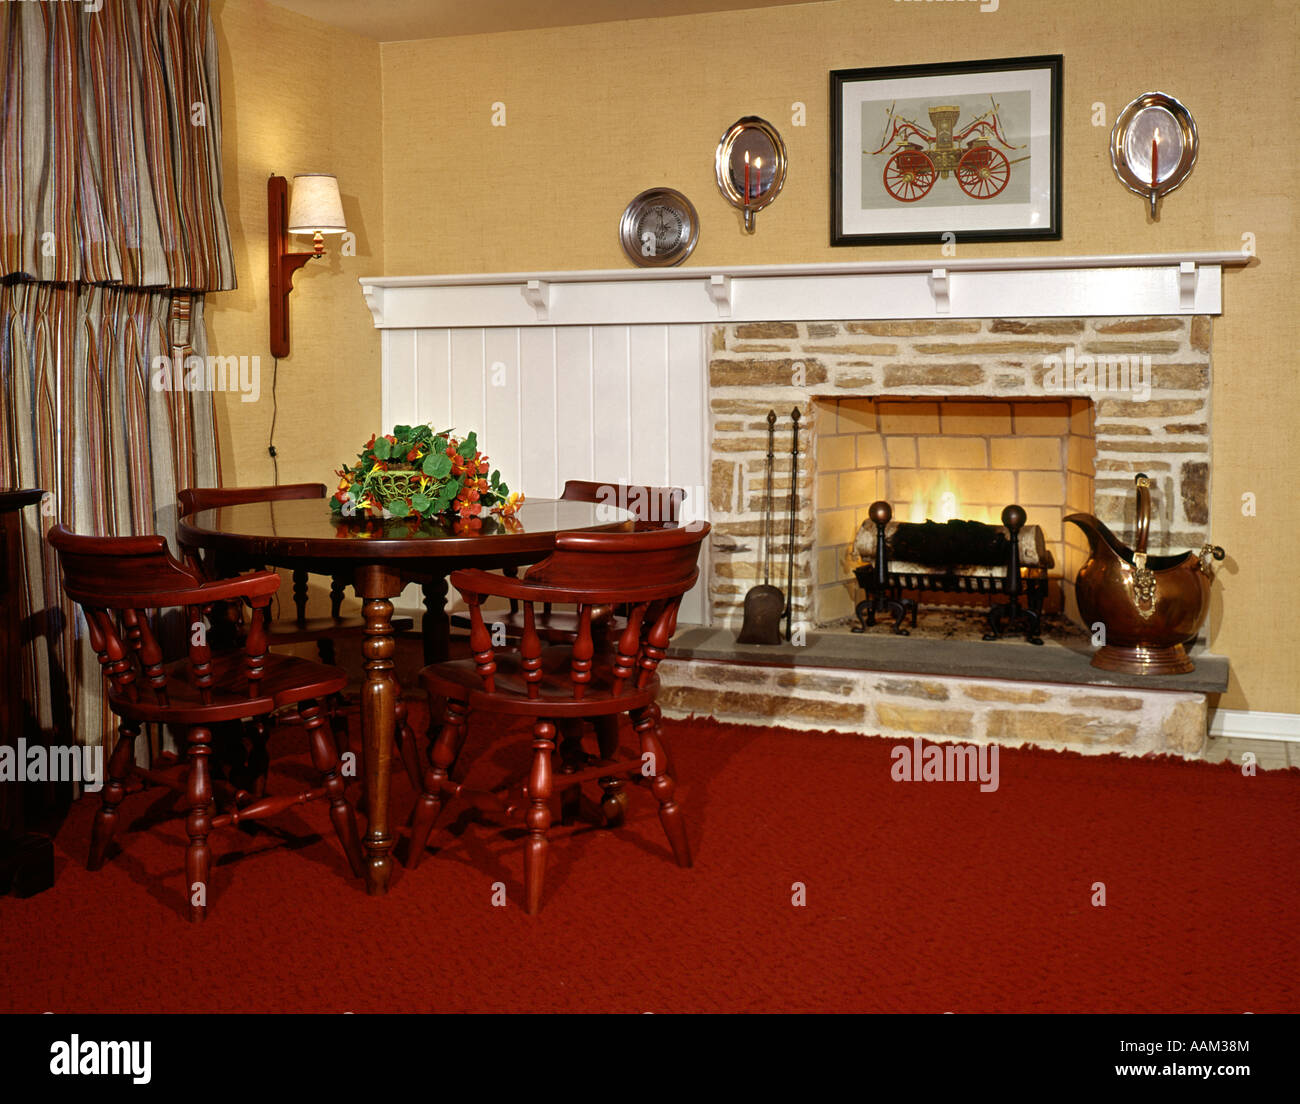 Attractive 1960s 1970s WOOD BURNING FIREPLACE STONE INTERIOR COUNTRY COLONIAL FURNITURE  TABLE CHAIRS RED CARPET SCONCES MANTLE